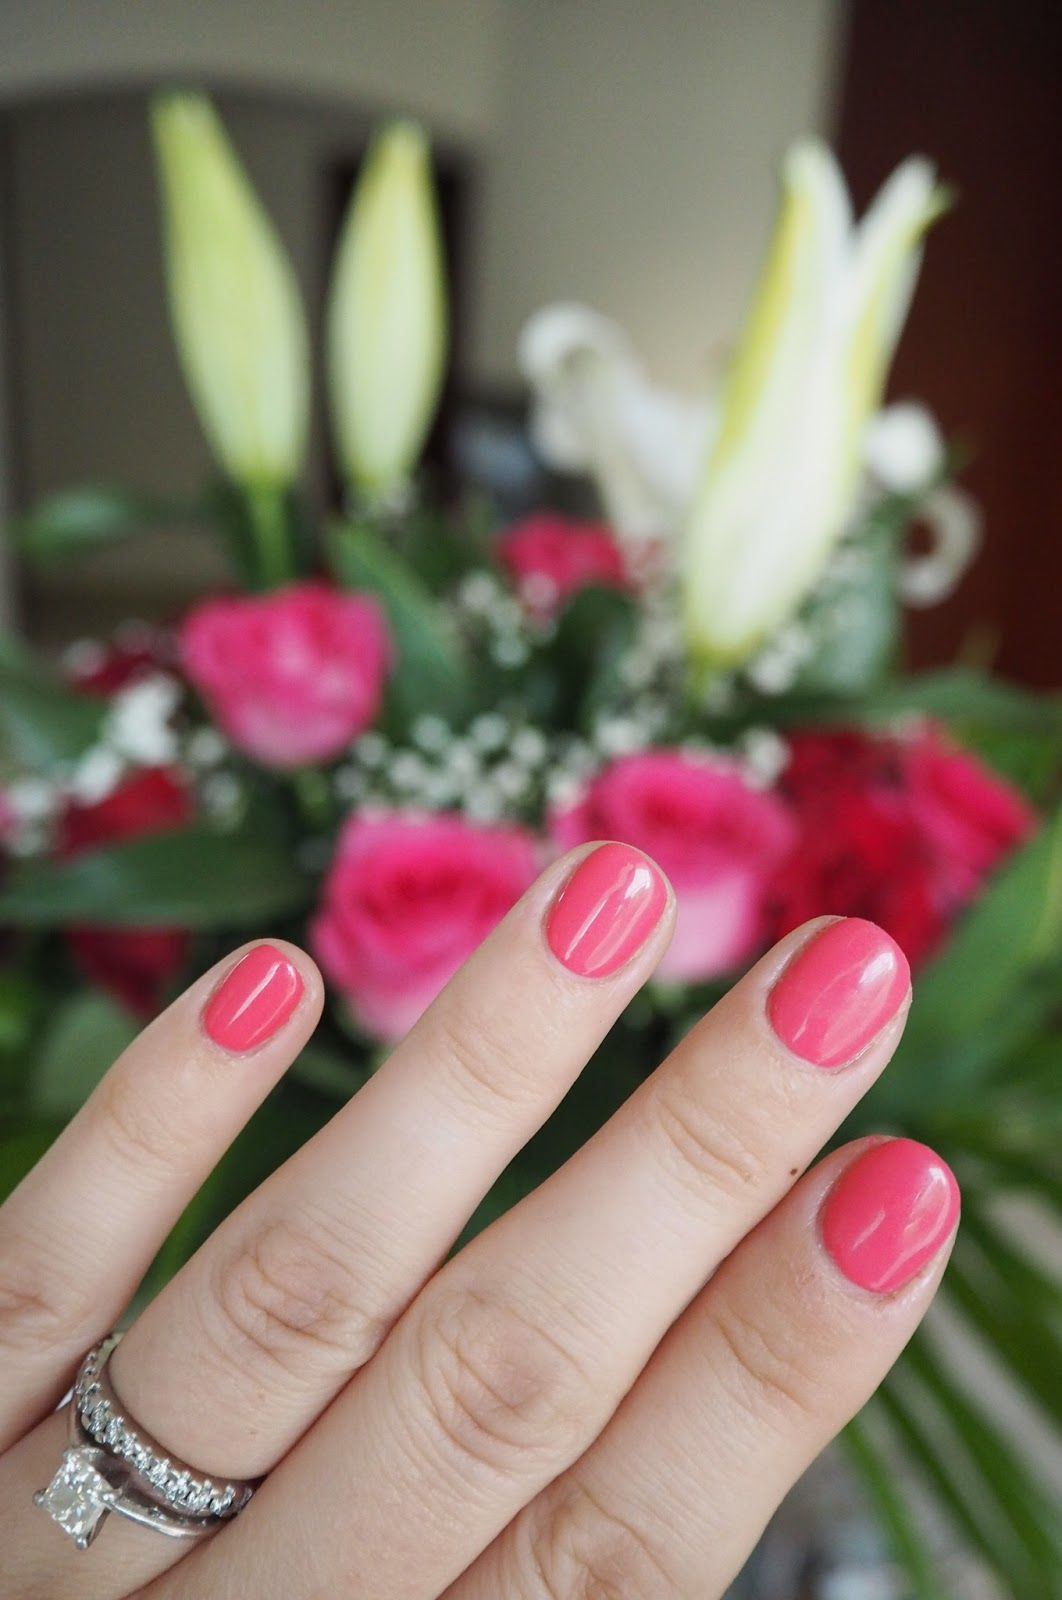 Maybe you would like to learn more about one of these? Gelish manicure in 'Passion' / The White Room Spa Dubai ...